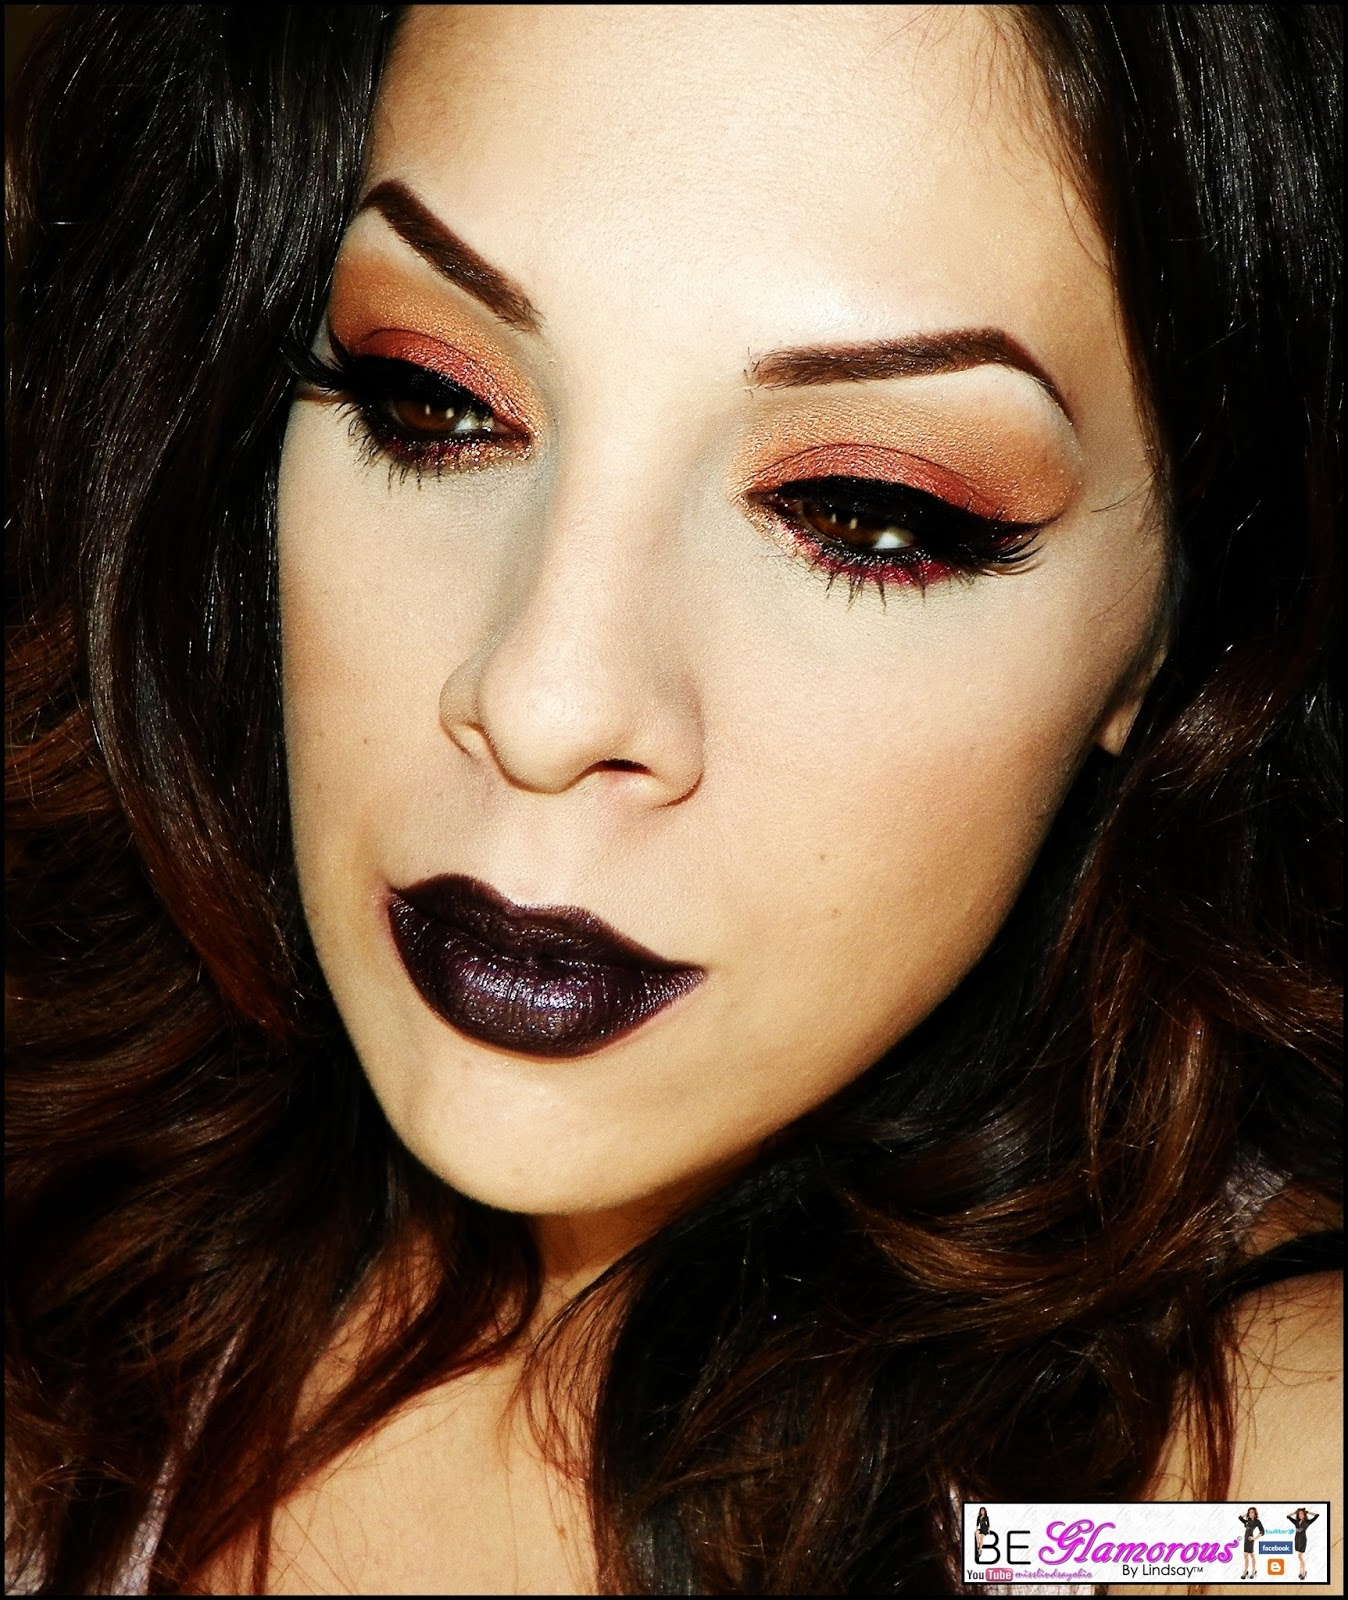 Be glamorous by lindsay fierce friday voodoo makeup look fierce friday voodoo makeup look baditri Images